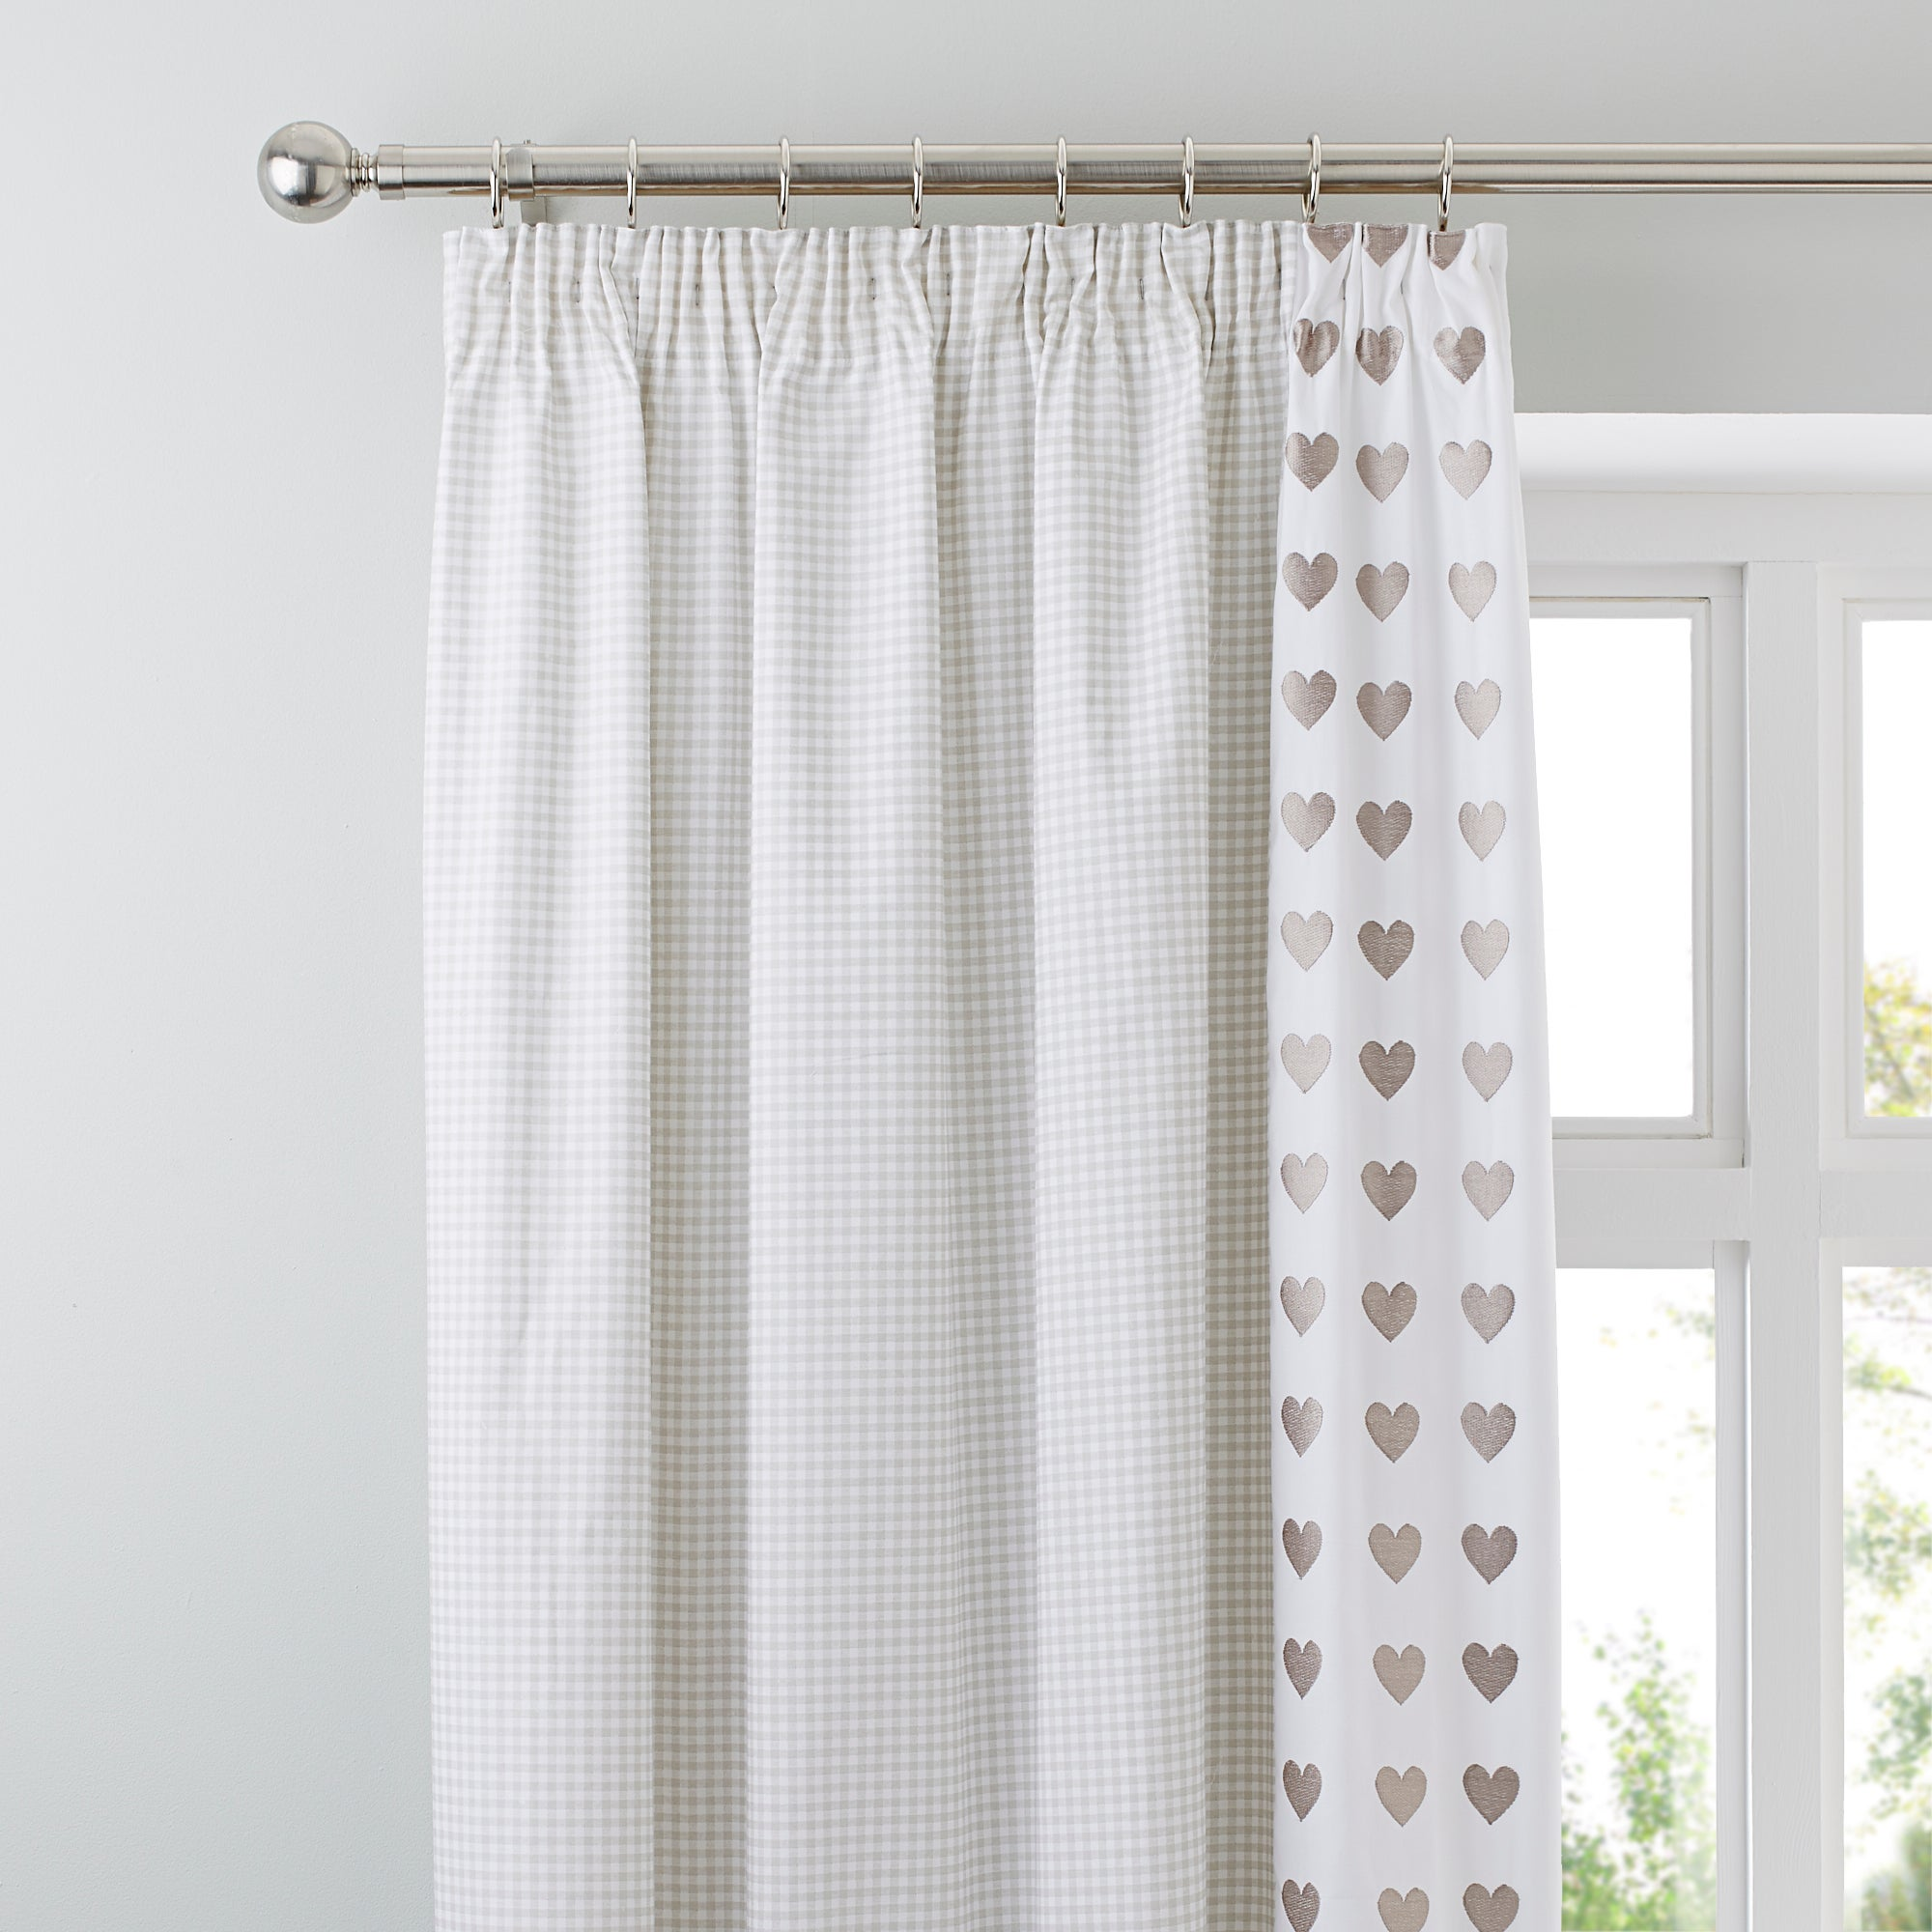 Taupe Gingham Hearts Thermal Pencil Pleat Curtains